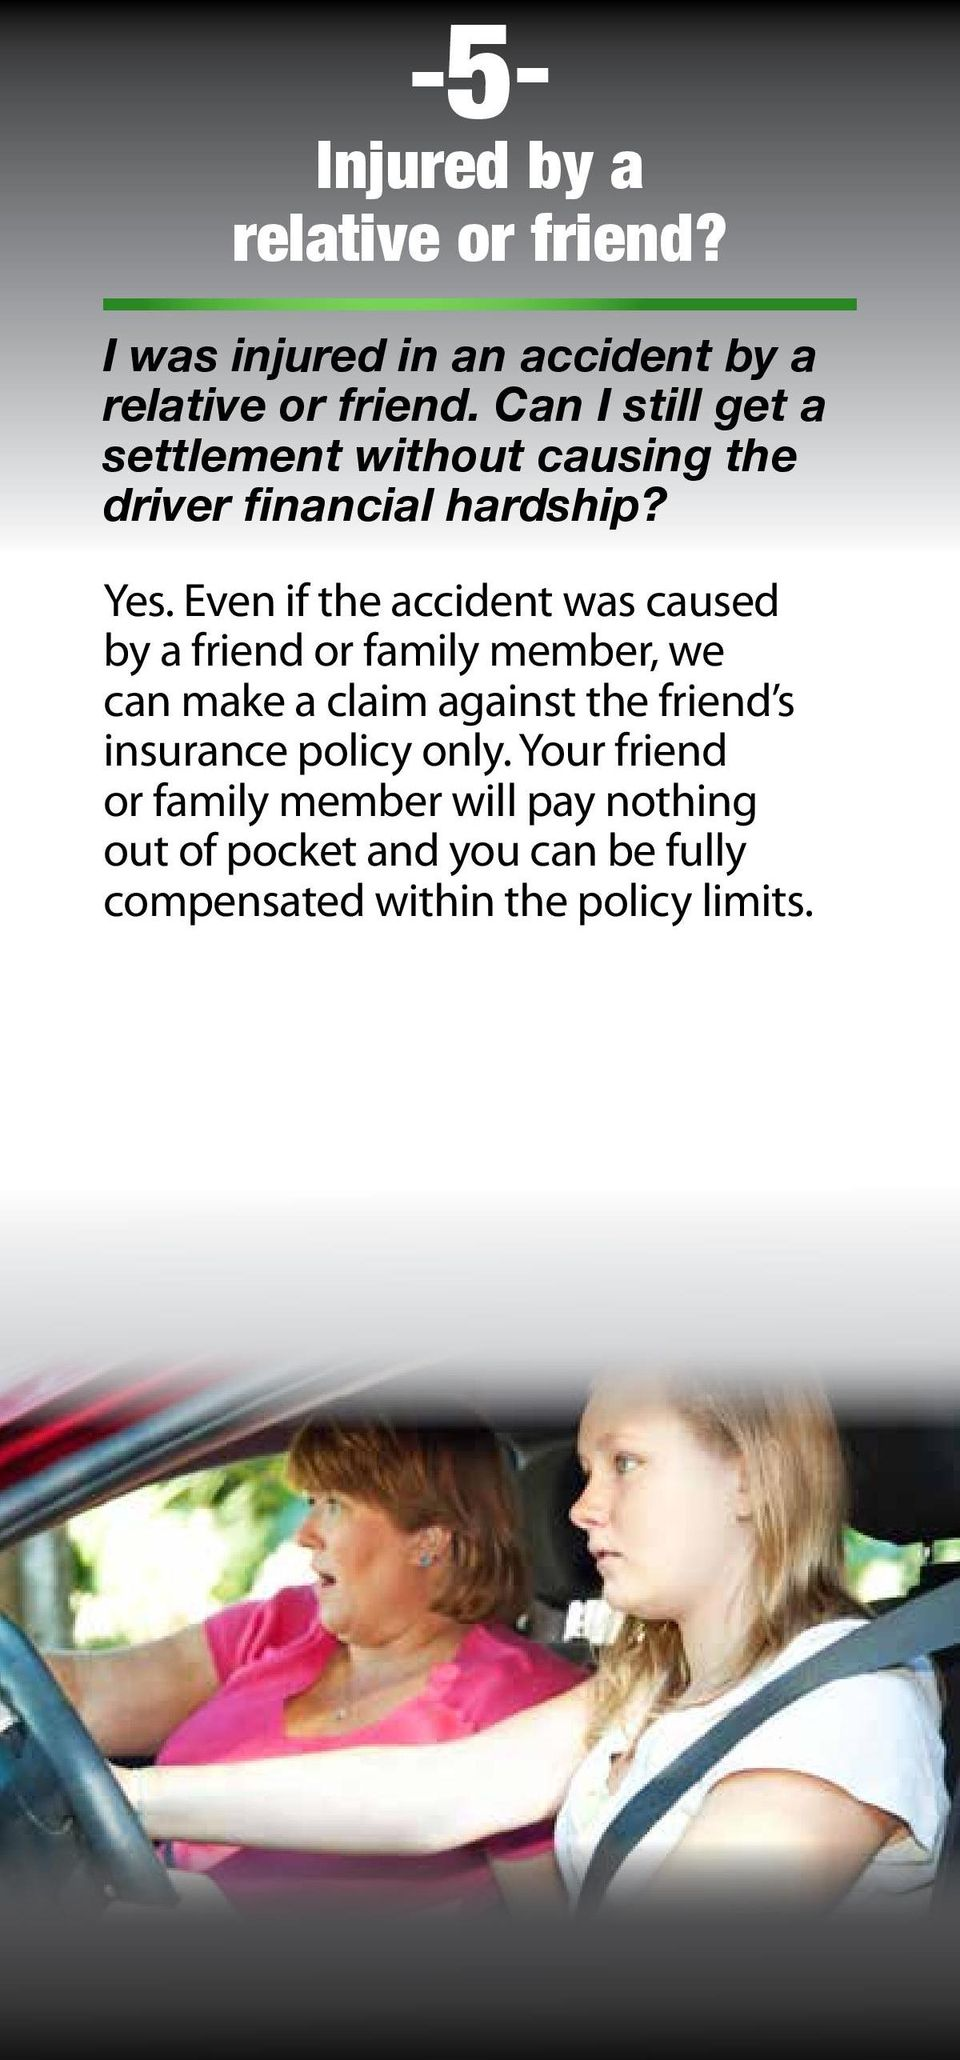 Even if the accident was caused by a friend or family member, we can make a claim against the friend s